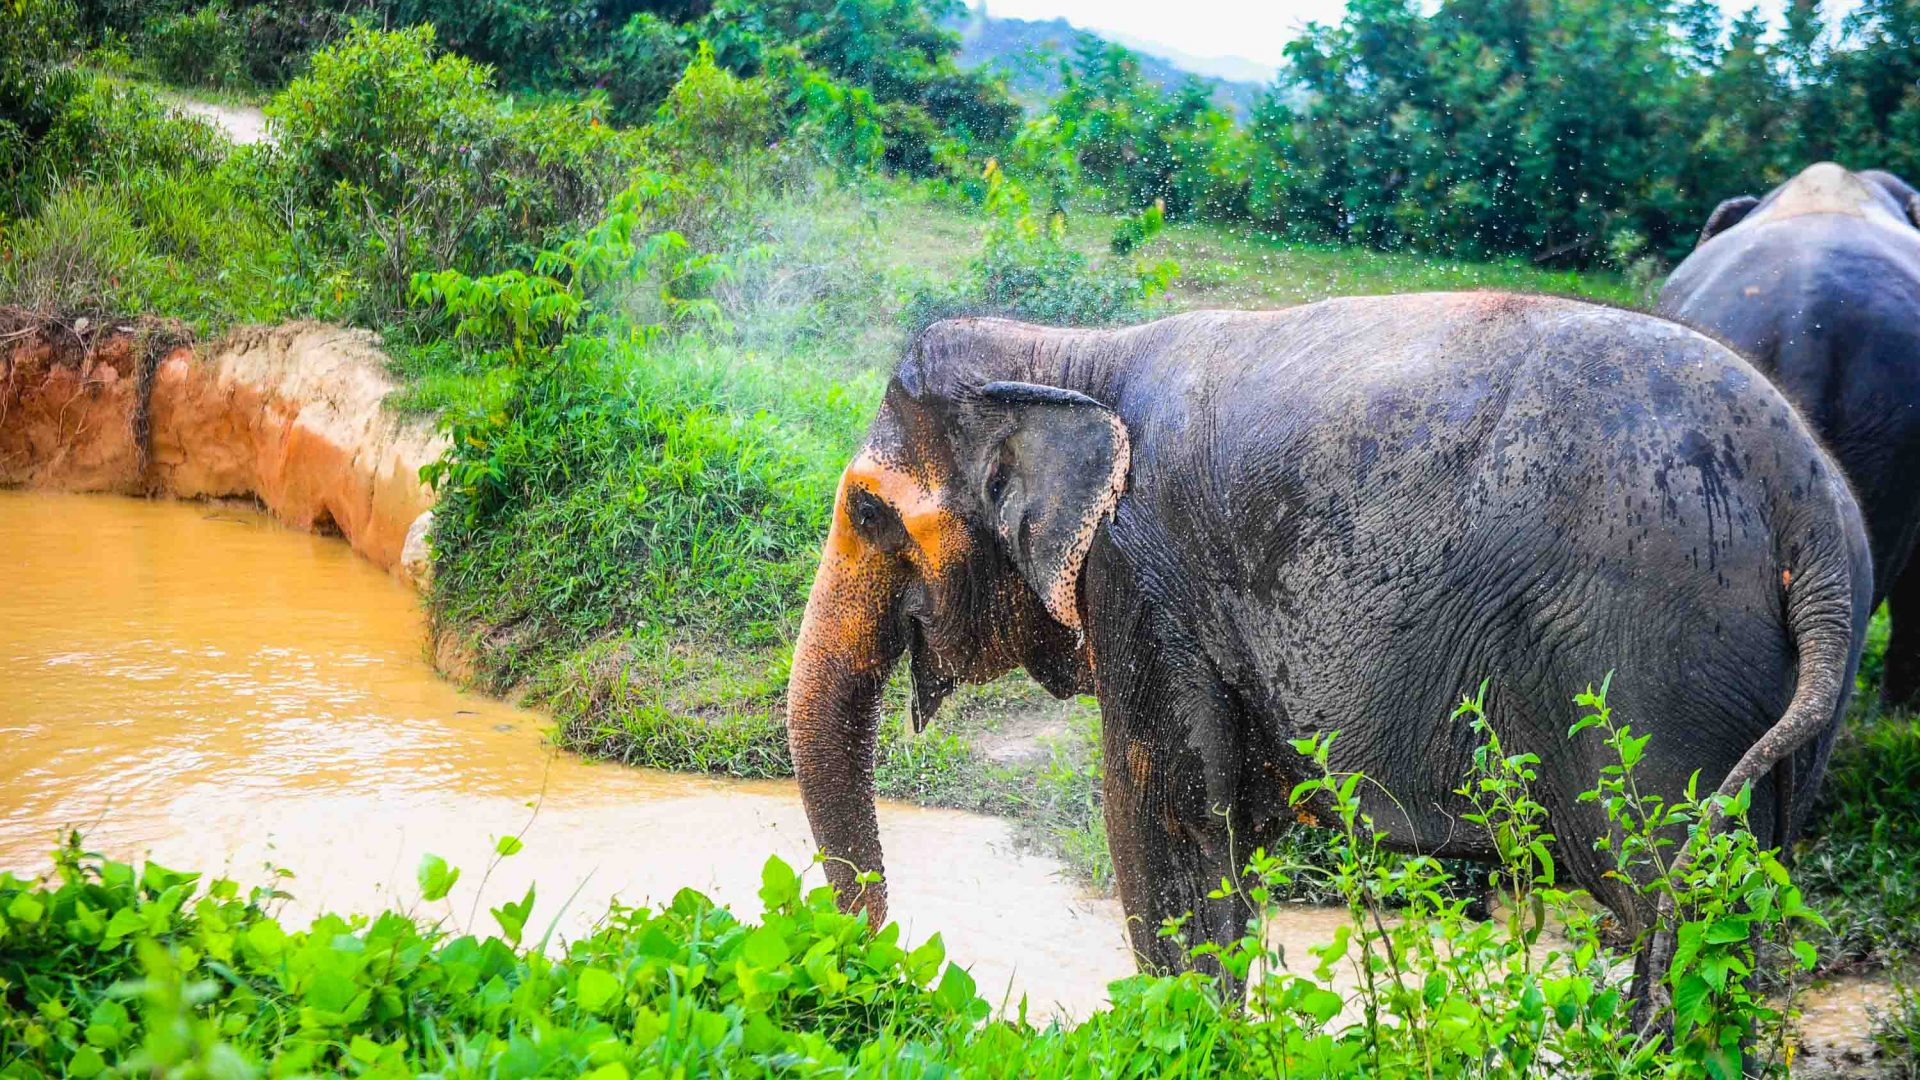 An elephant by a body of brown water.